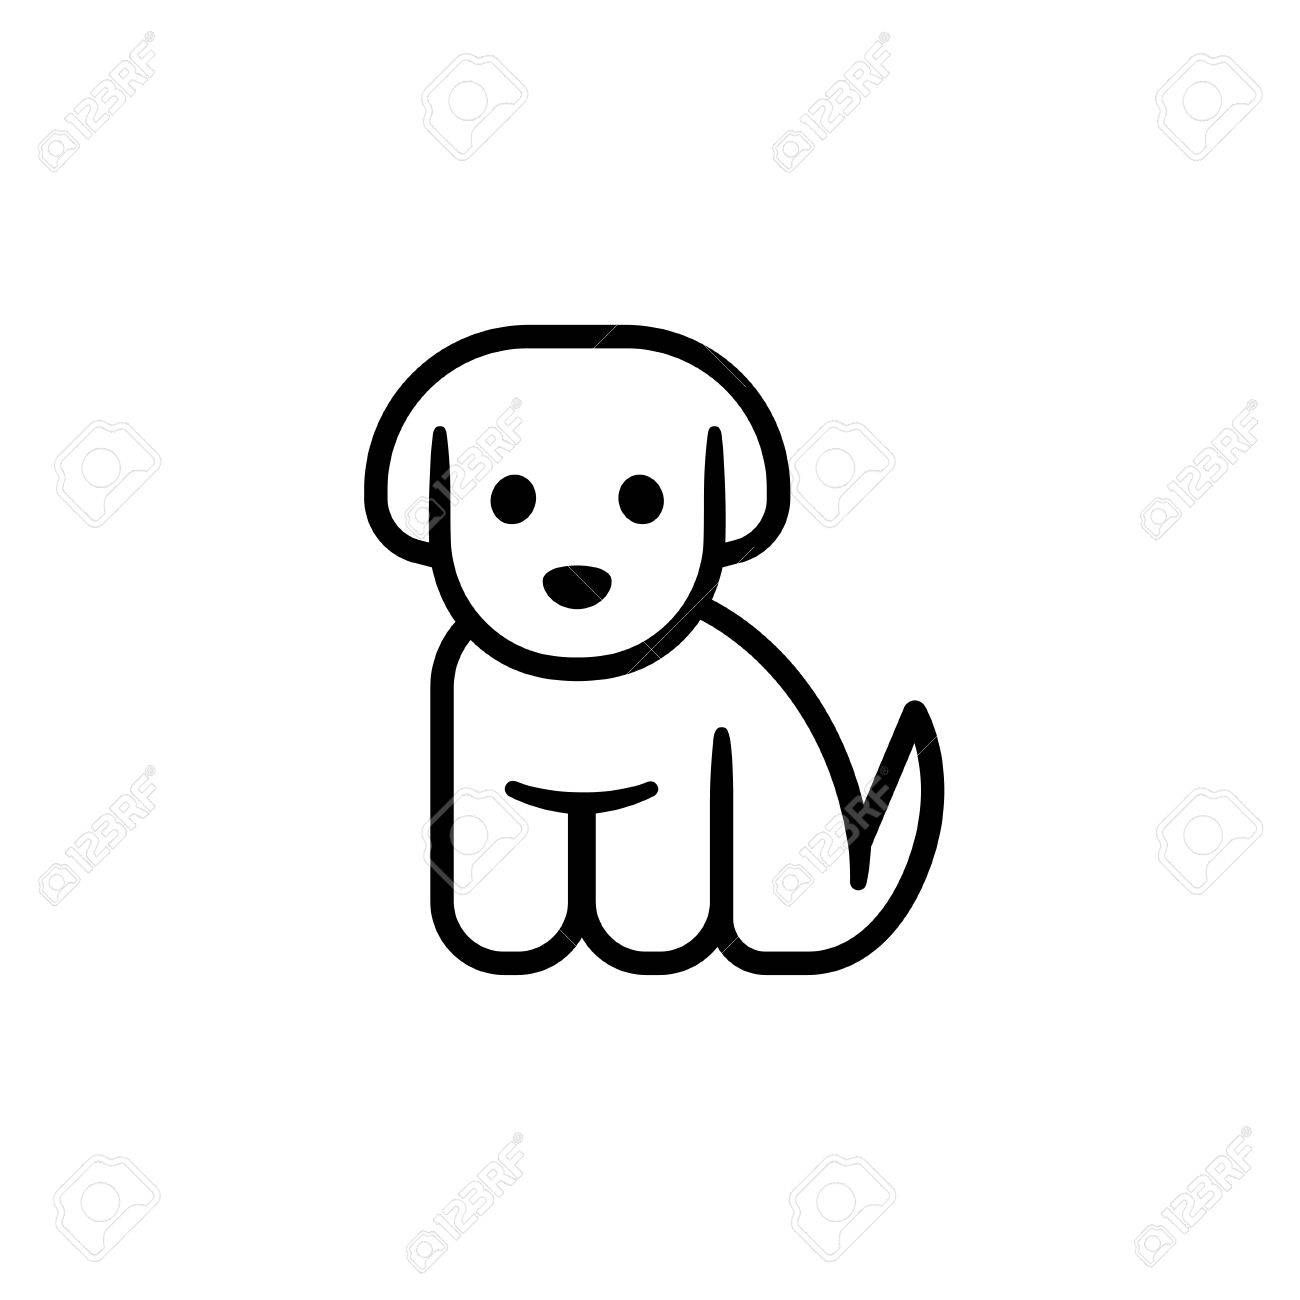 15+ Cute Puppy Black And White Clipart